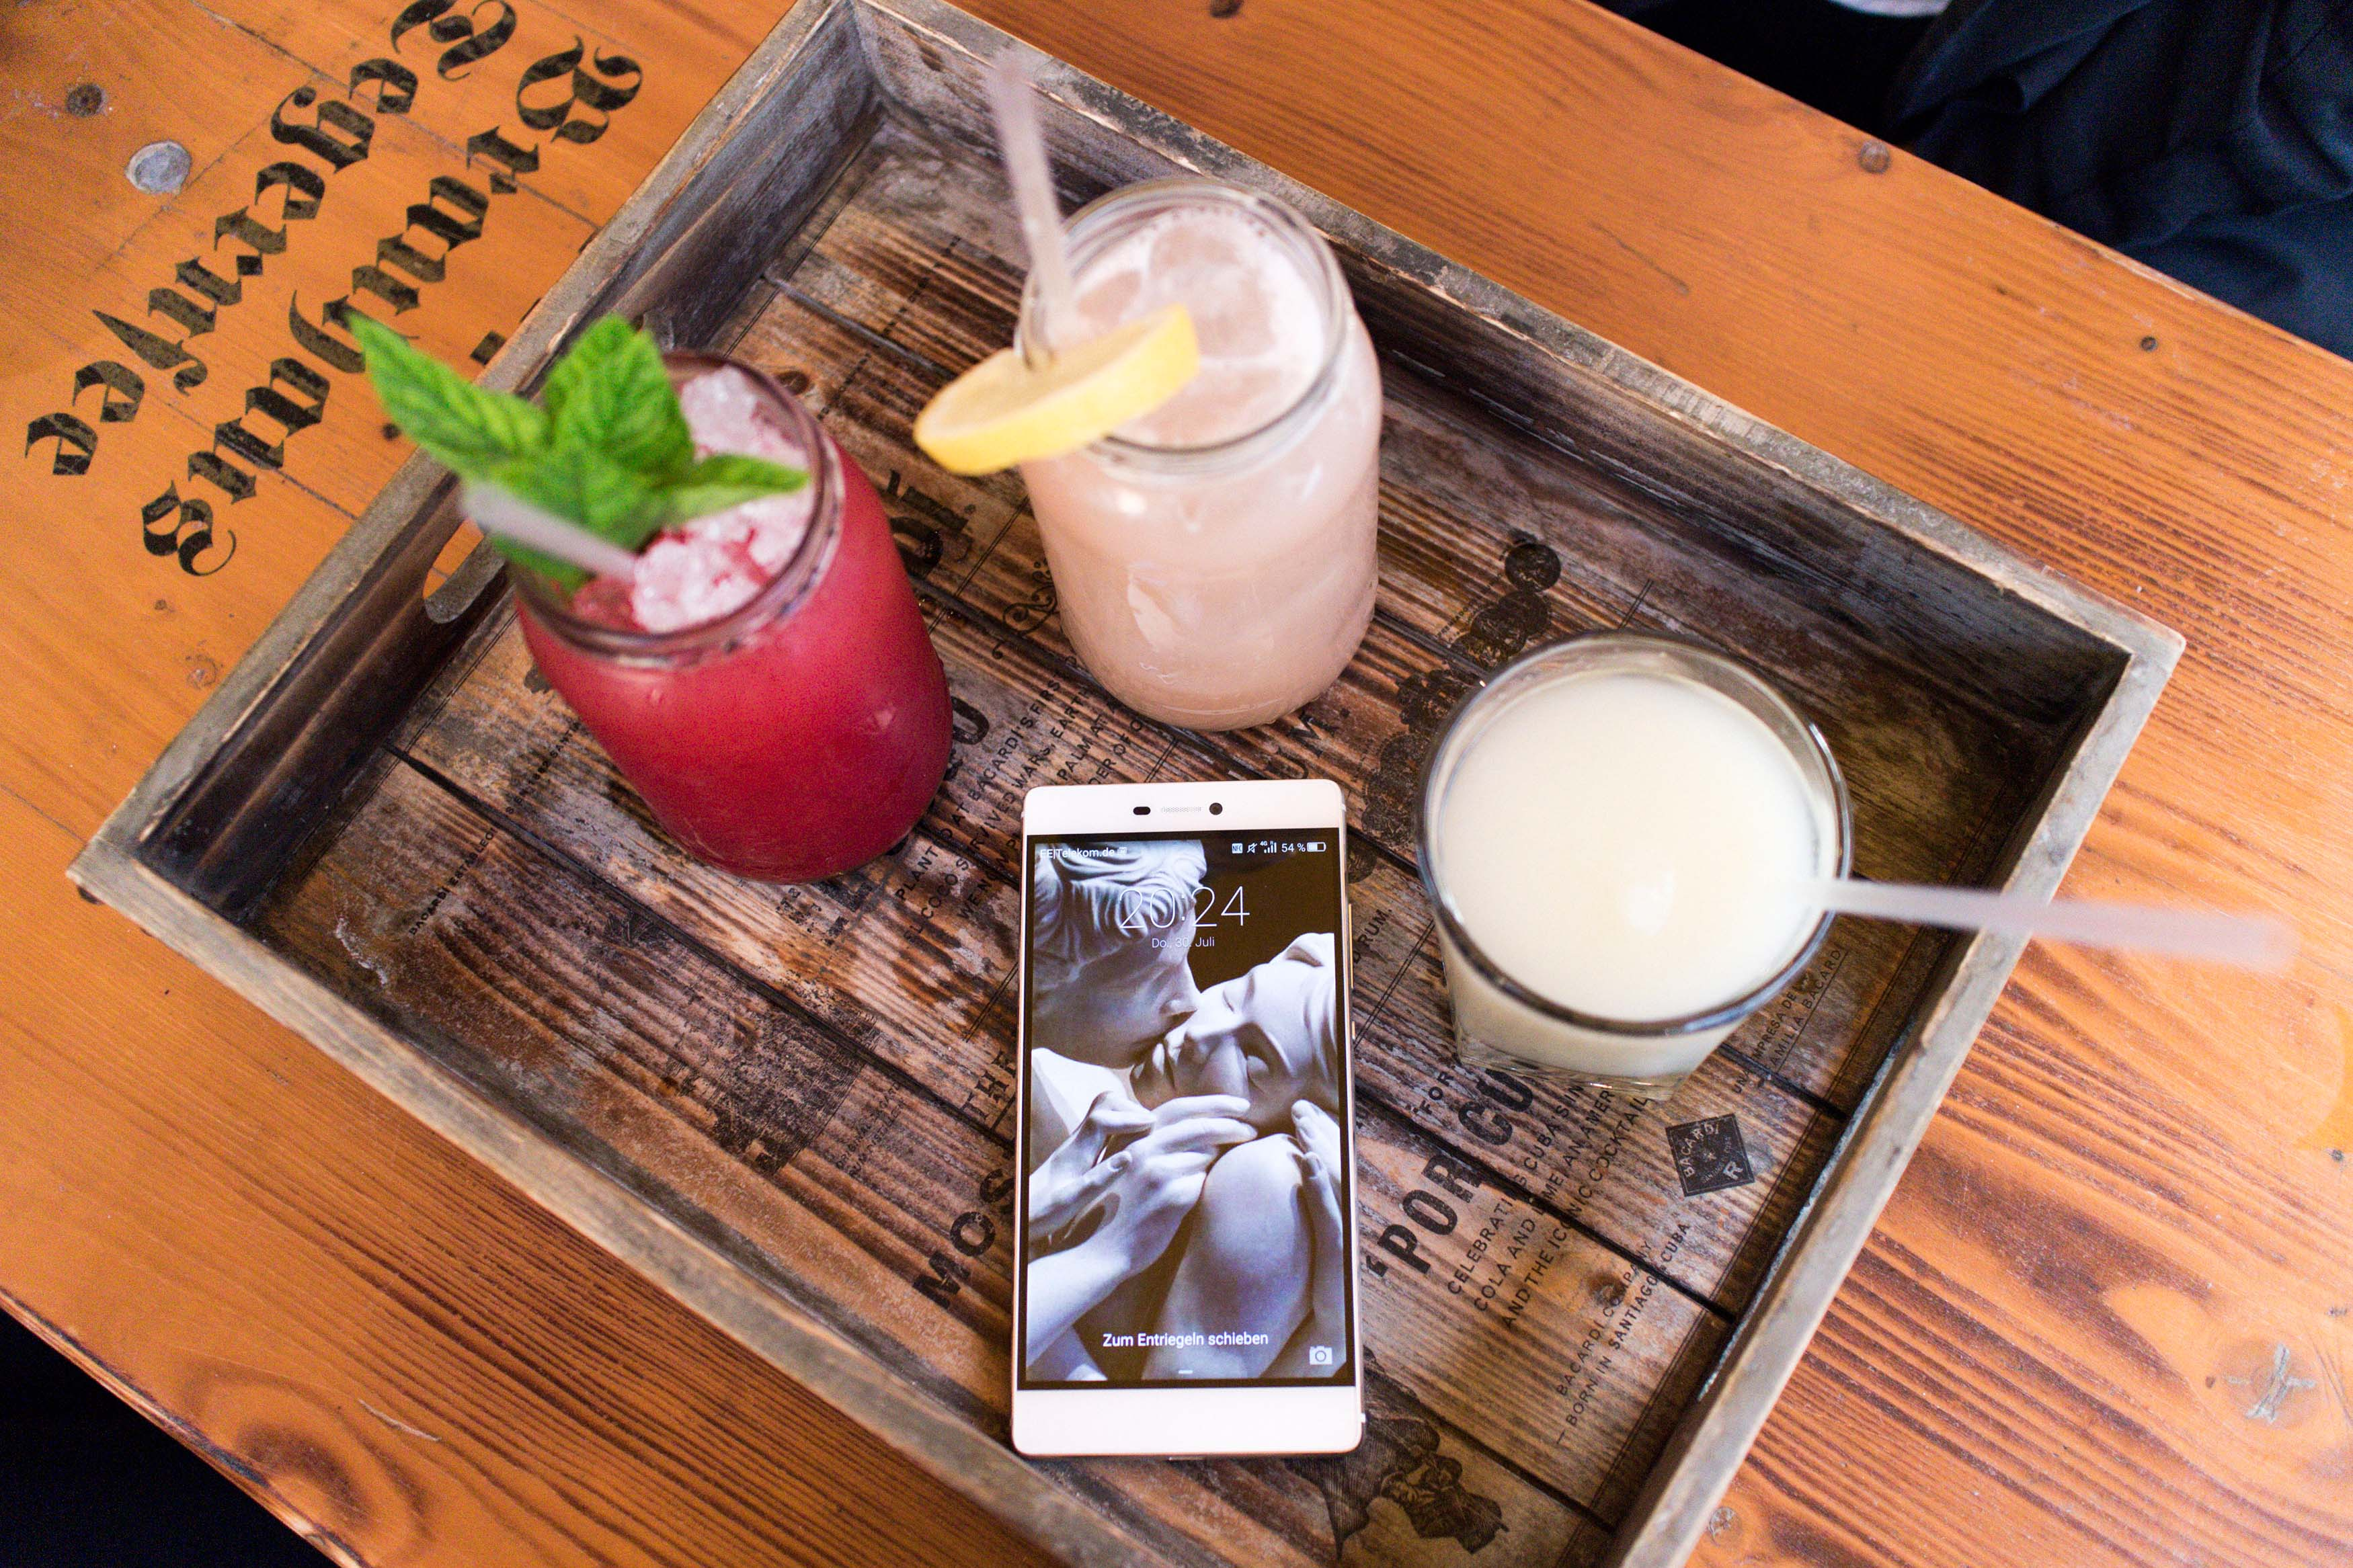 IHEARTALICE – Fashion & Travel Blog by Alice M. Huynh: London Travel Diary – El Patron in Putney